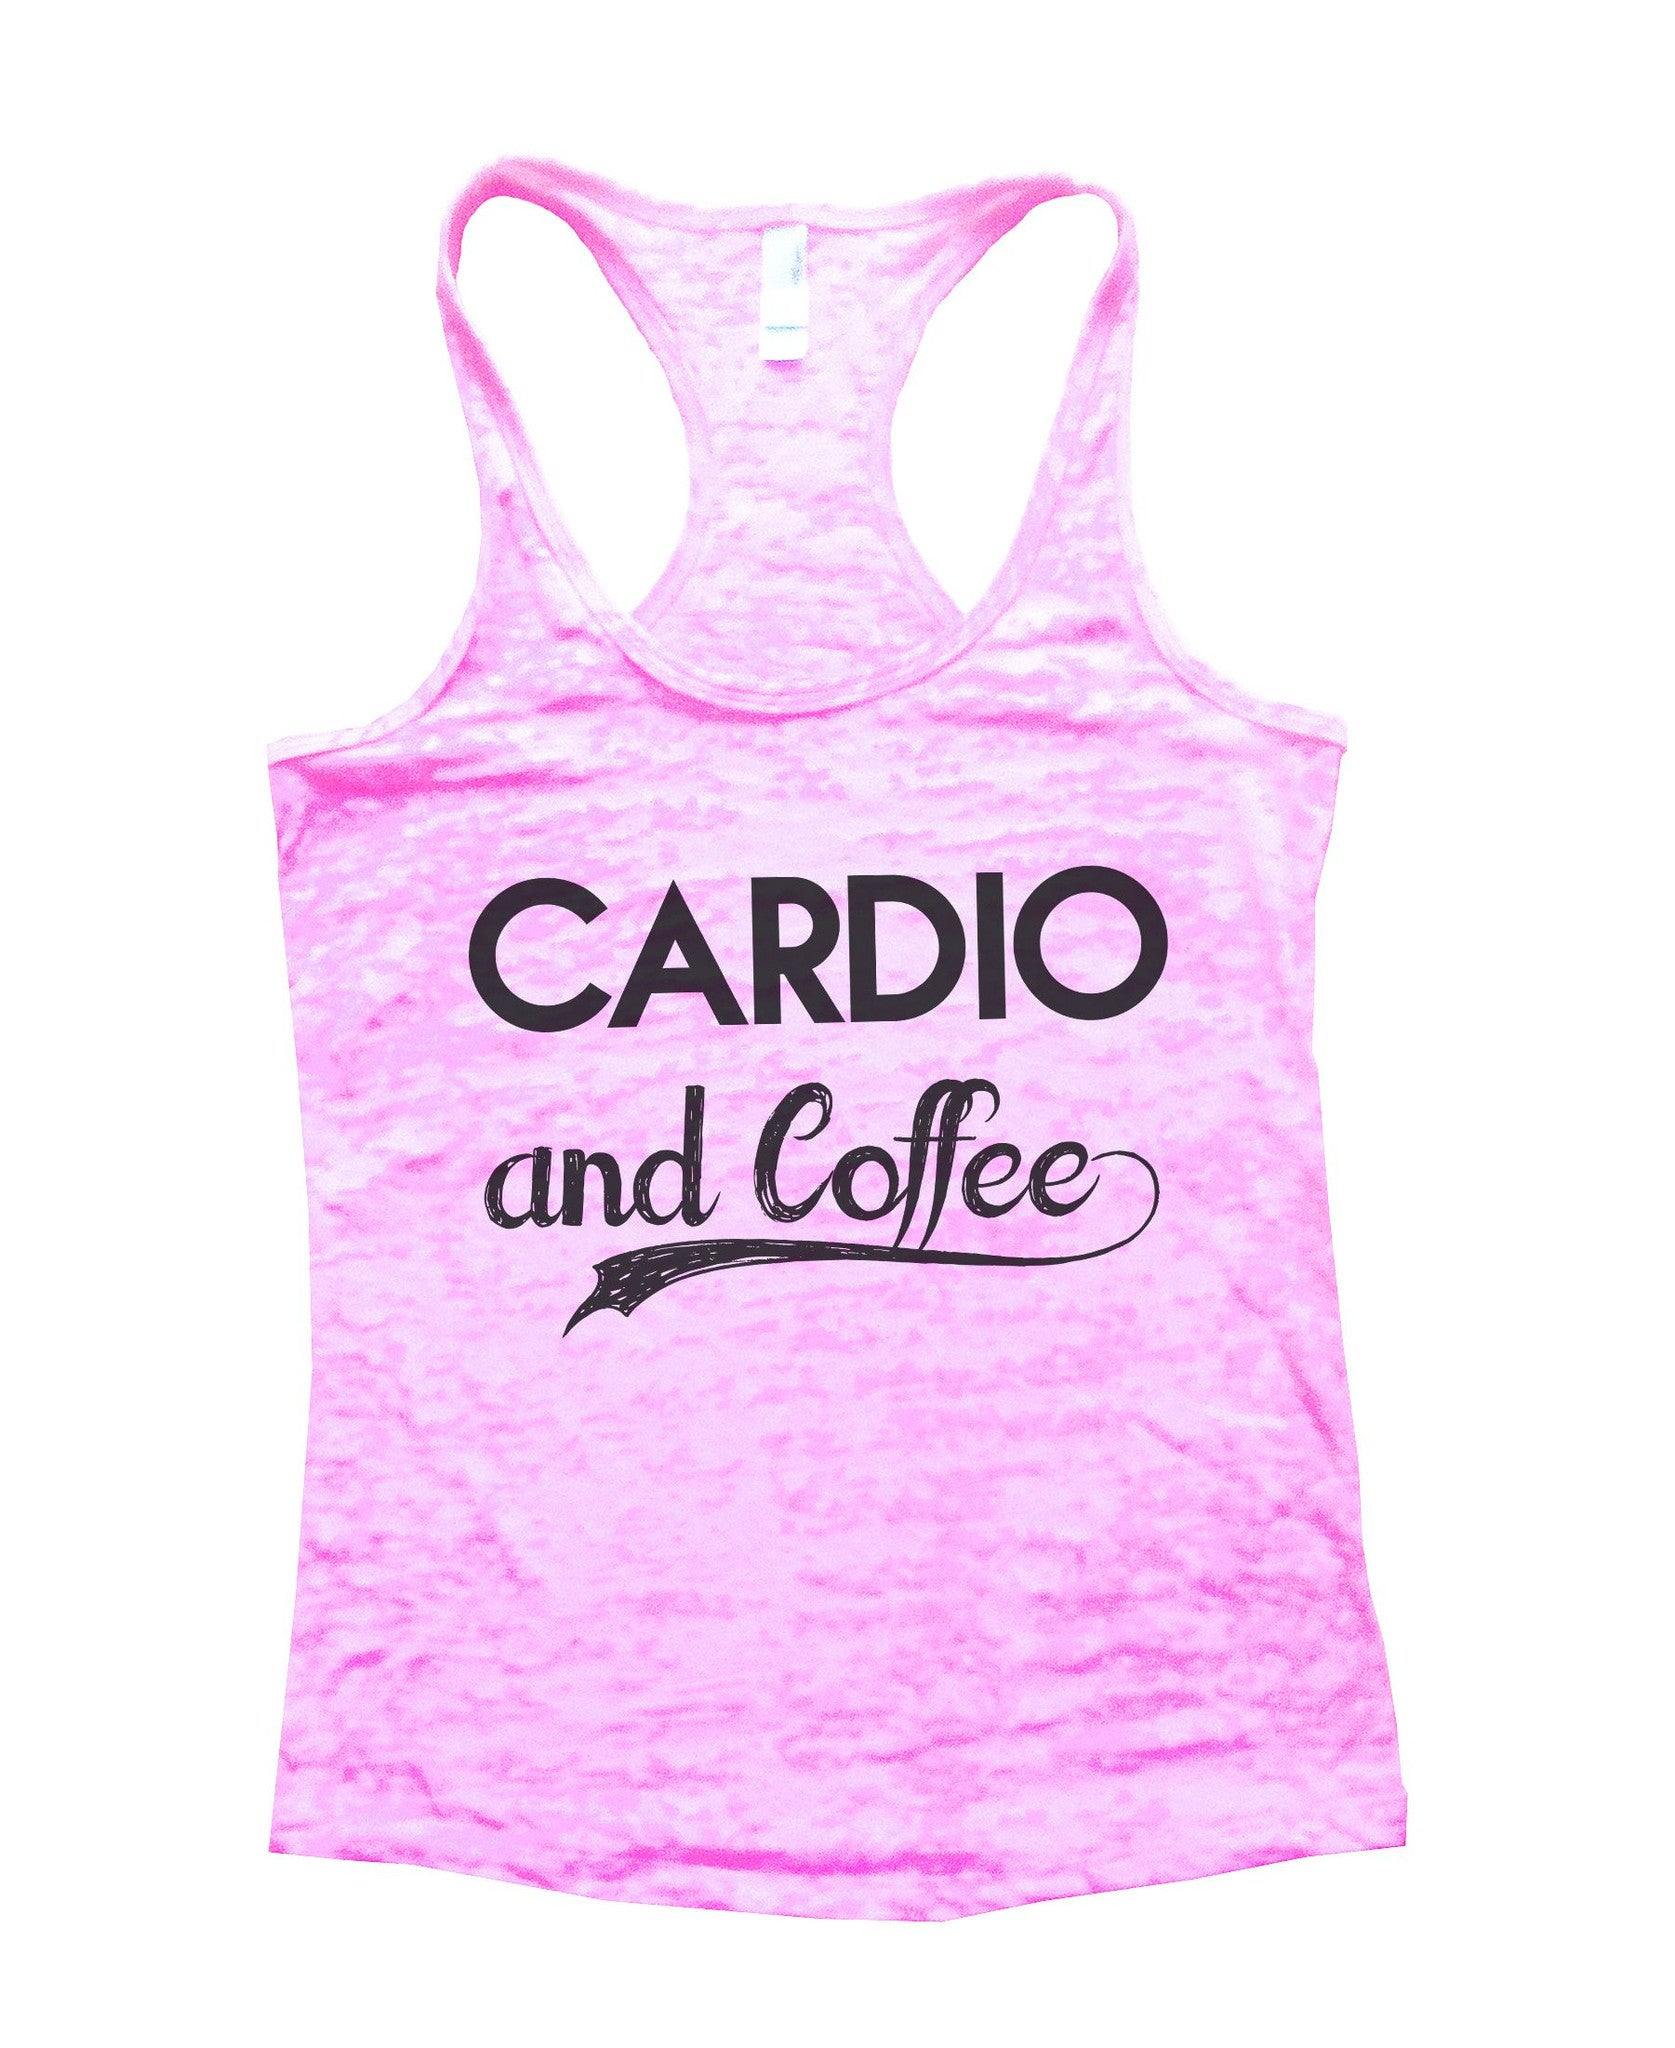 Cardio And Coffee Burnout Tank Top By BurnoutTankTops.com - 797 - Funny Shirts Tank Tops Burnouts and Triblends  - 1